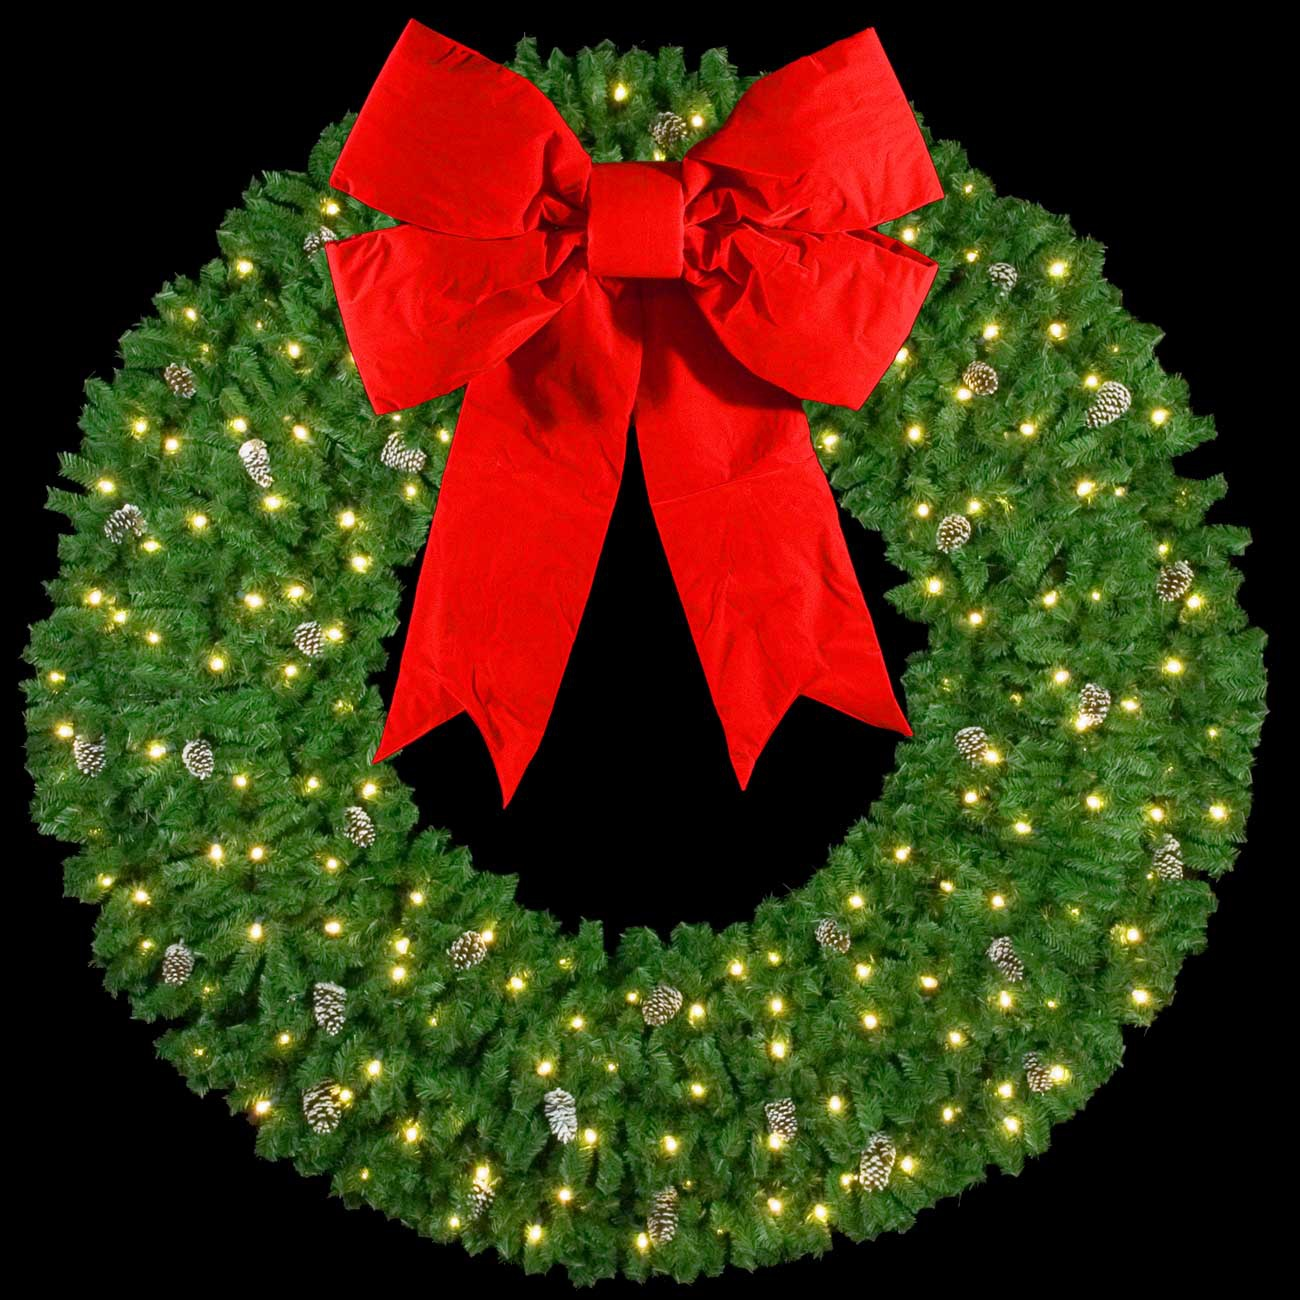 Artificial Christmas Wreaths 10 3 D Wreath With 60